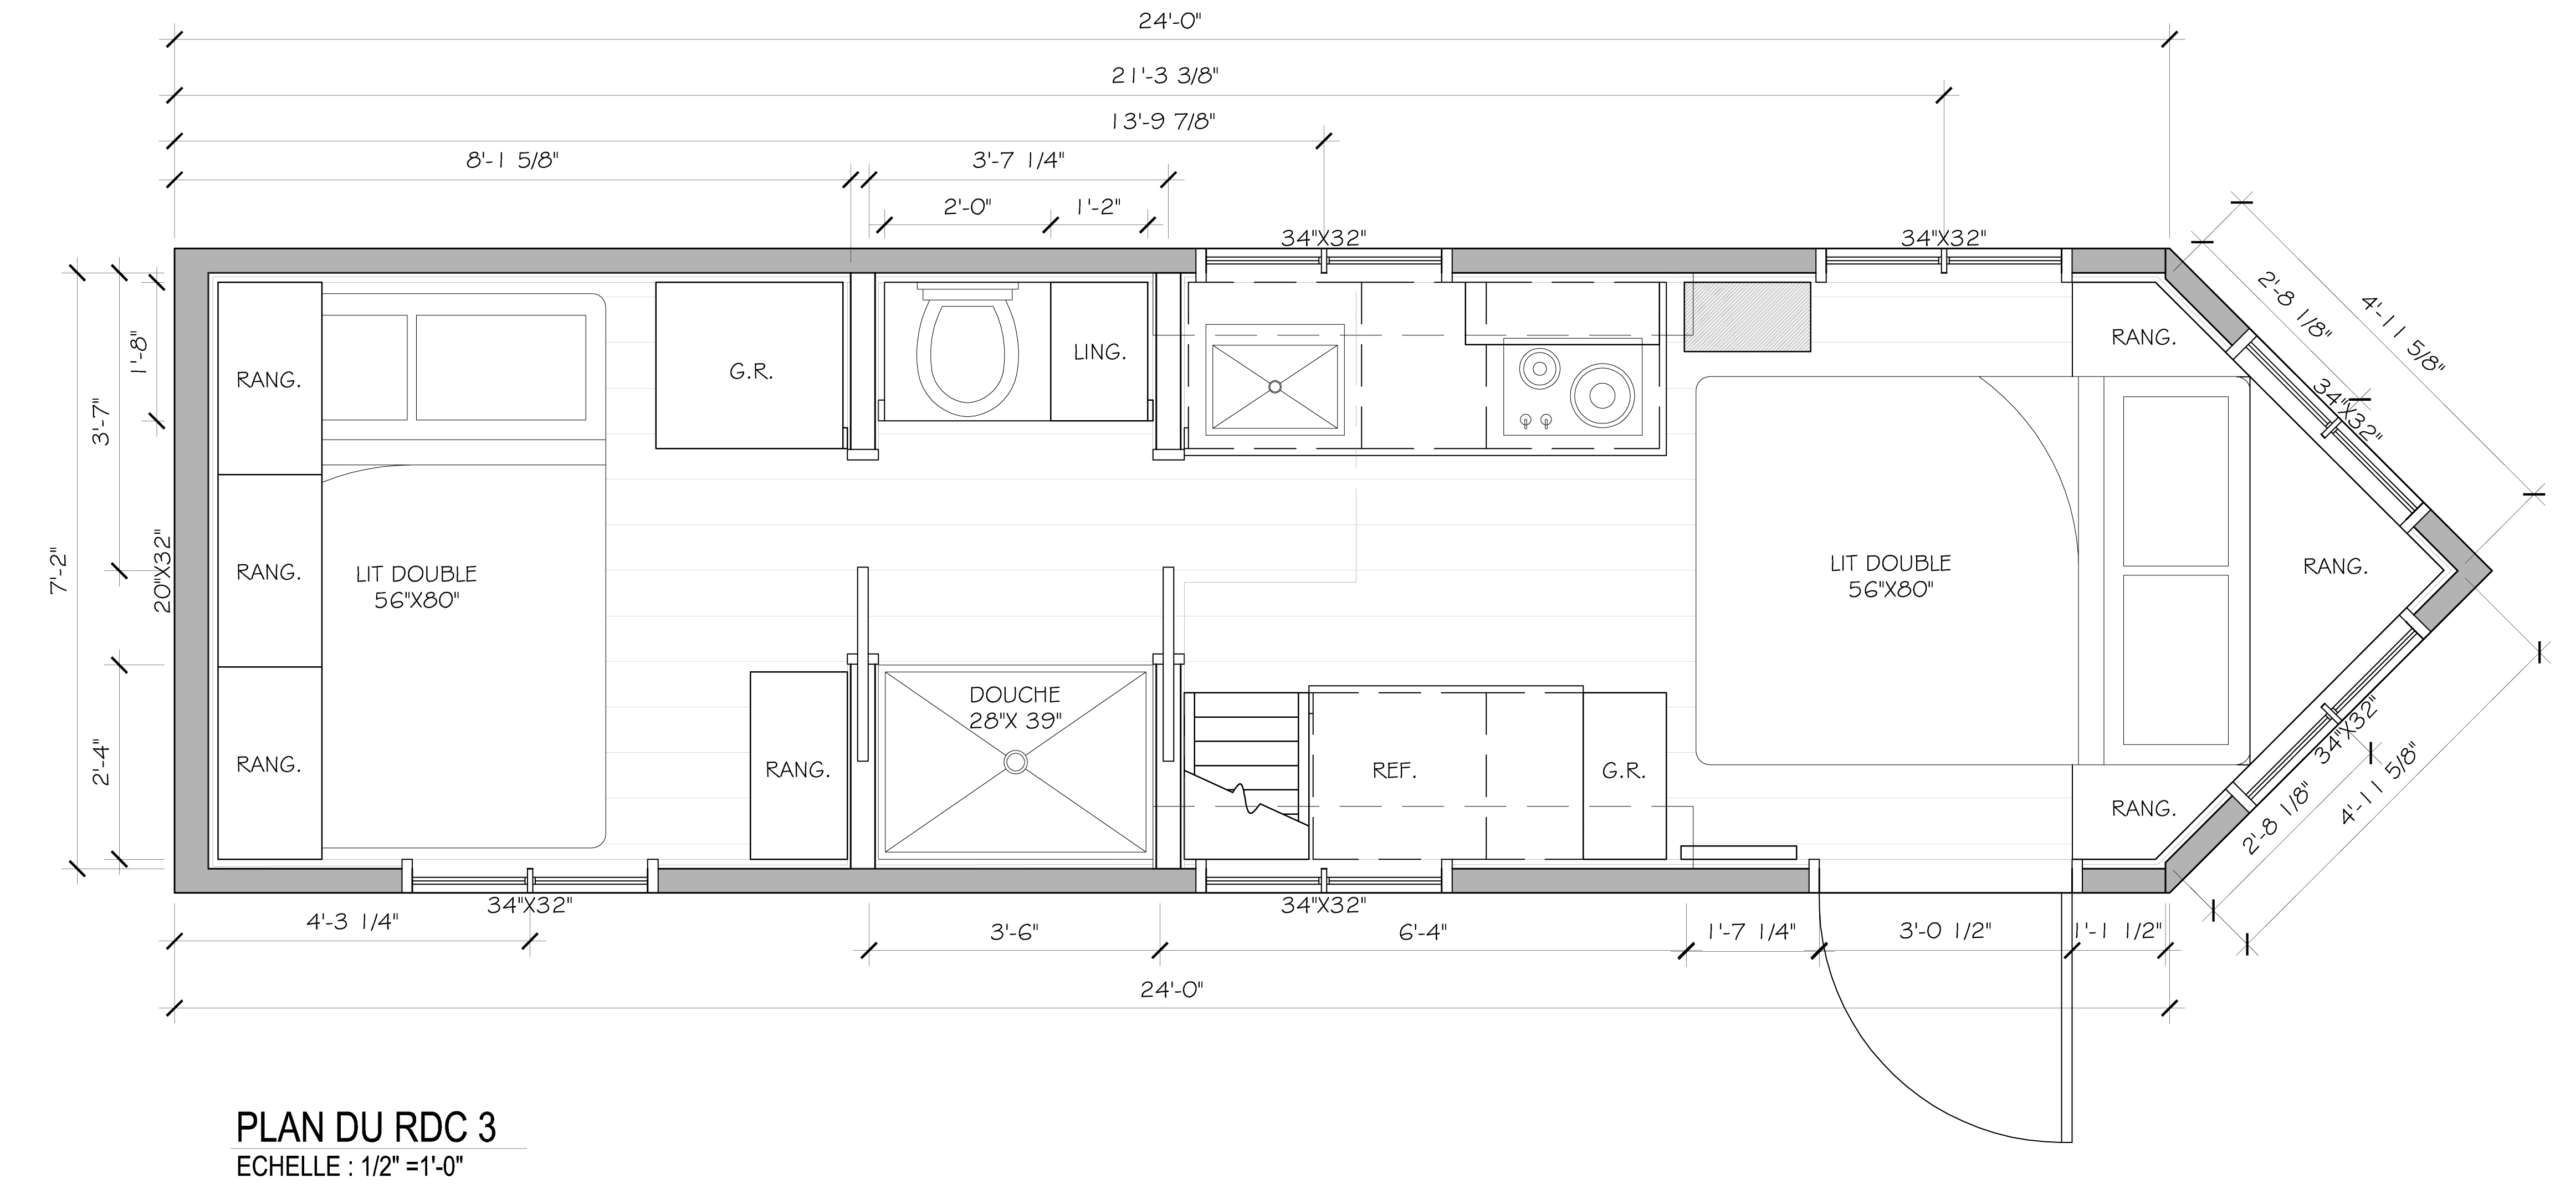 Tiny House Plans On Wheels Free In 2020 Tiny House On Wheels Tiny House Plans Tiny House Inspiration